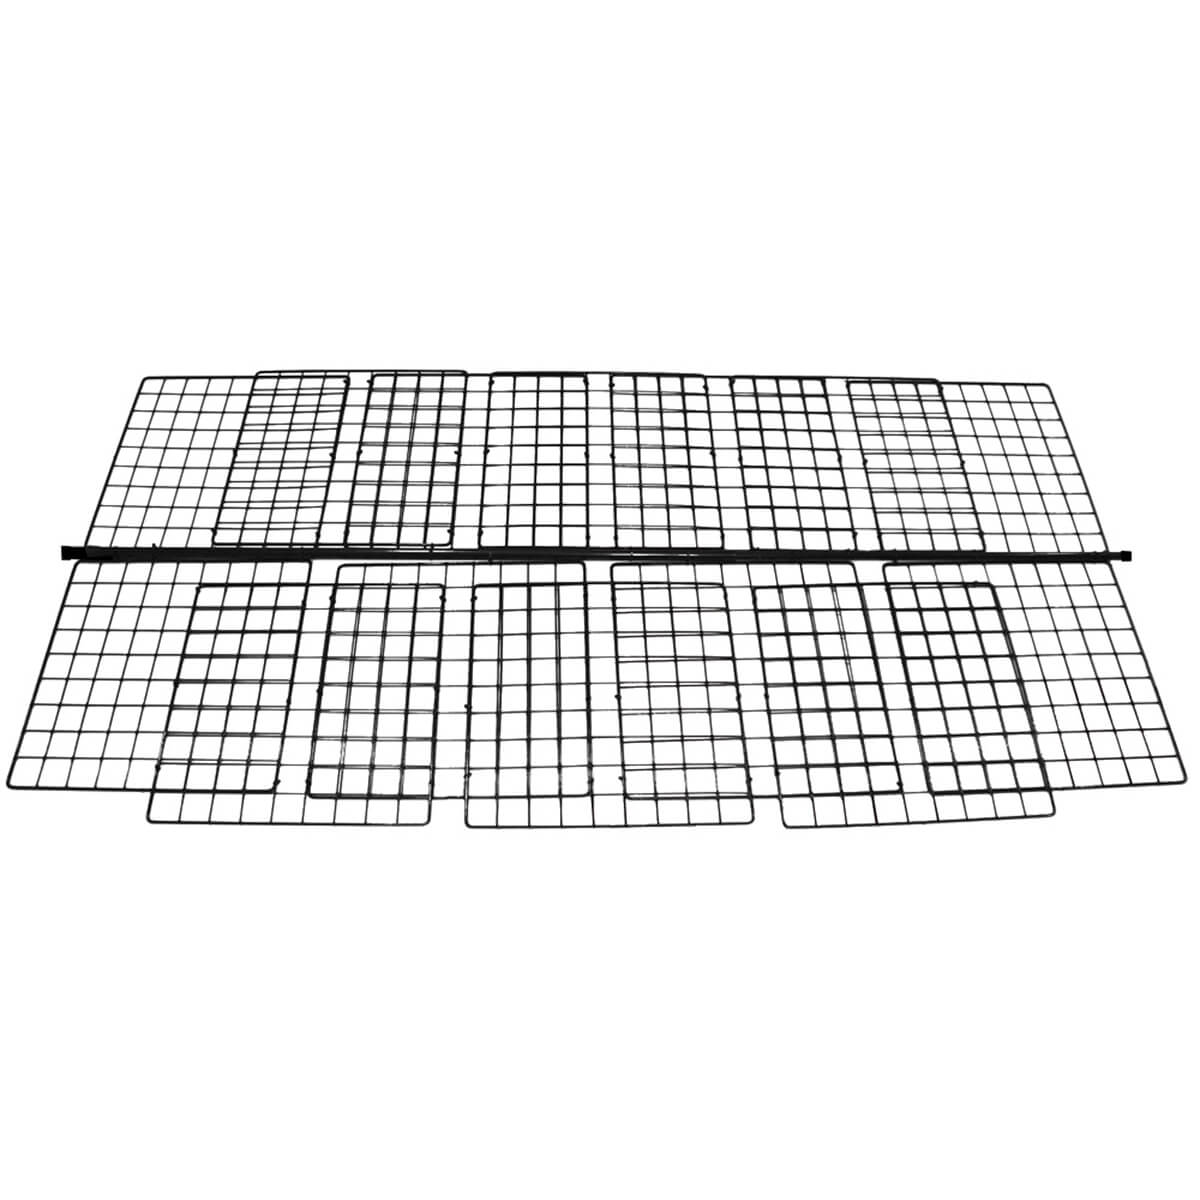 Cover for a Large C&C Guinea Pig Cage - 2x4 grids